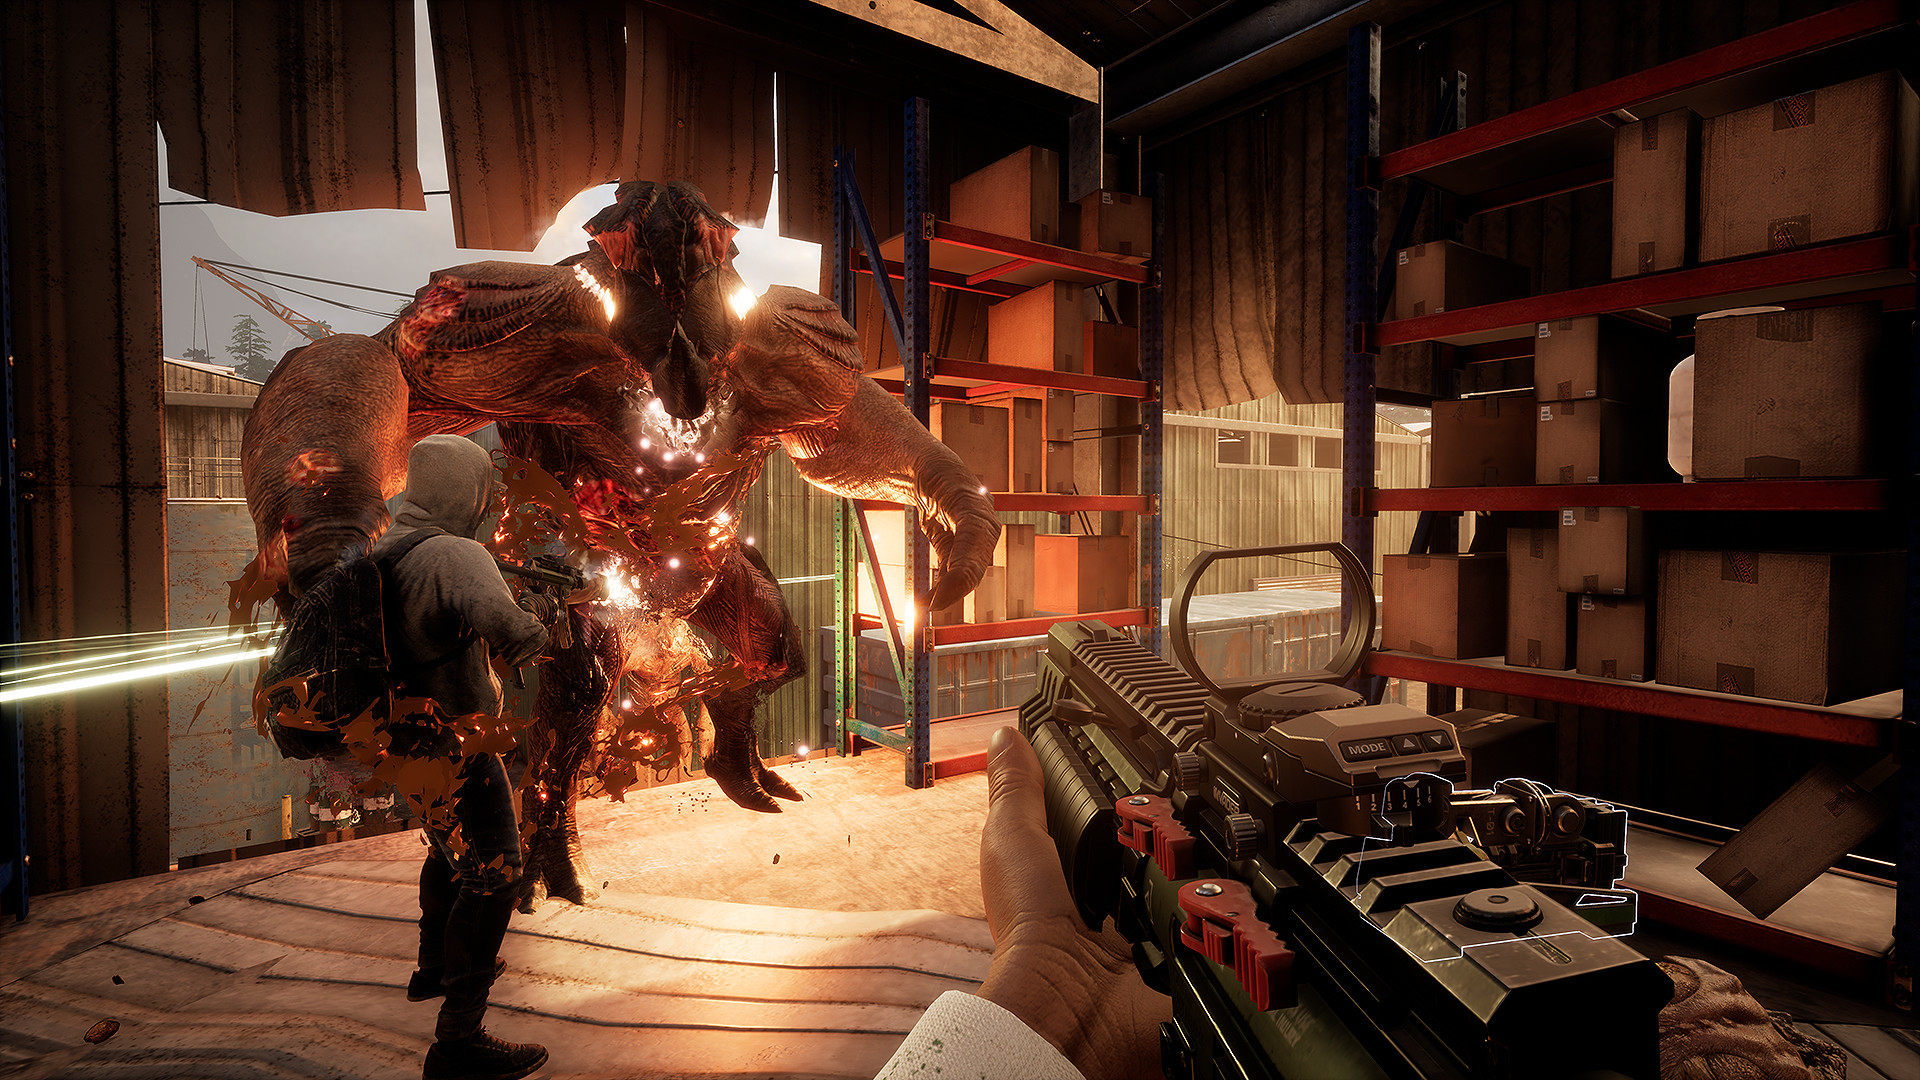 Earthfall releases onto Xbox One, PS4 and PC